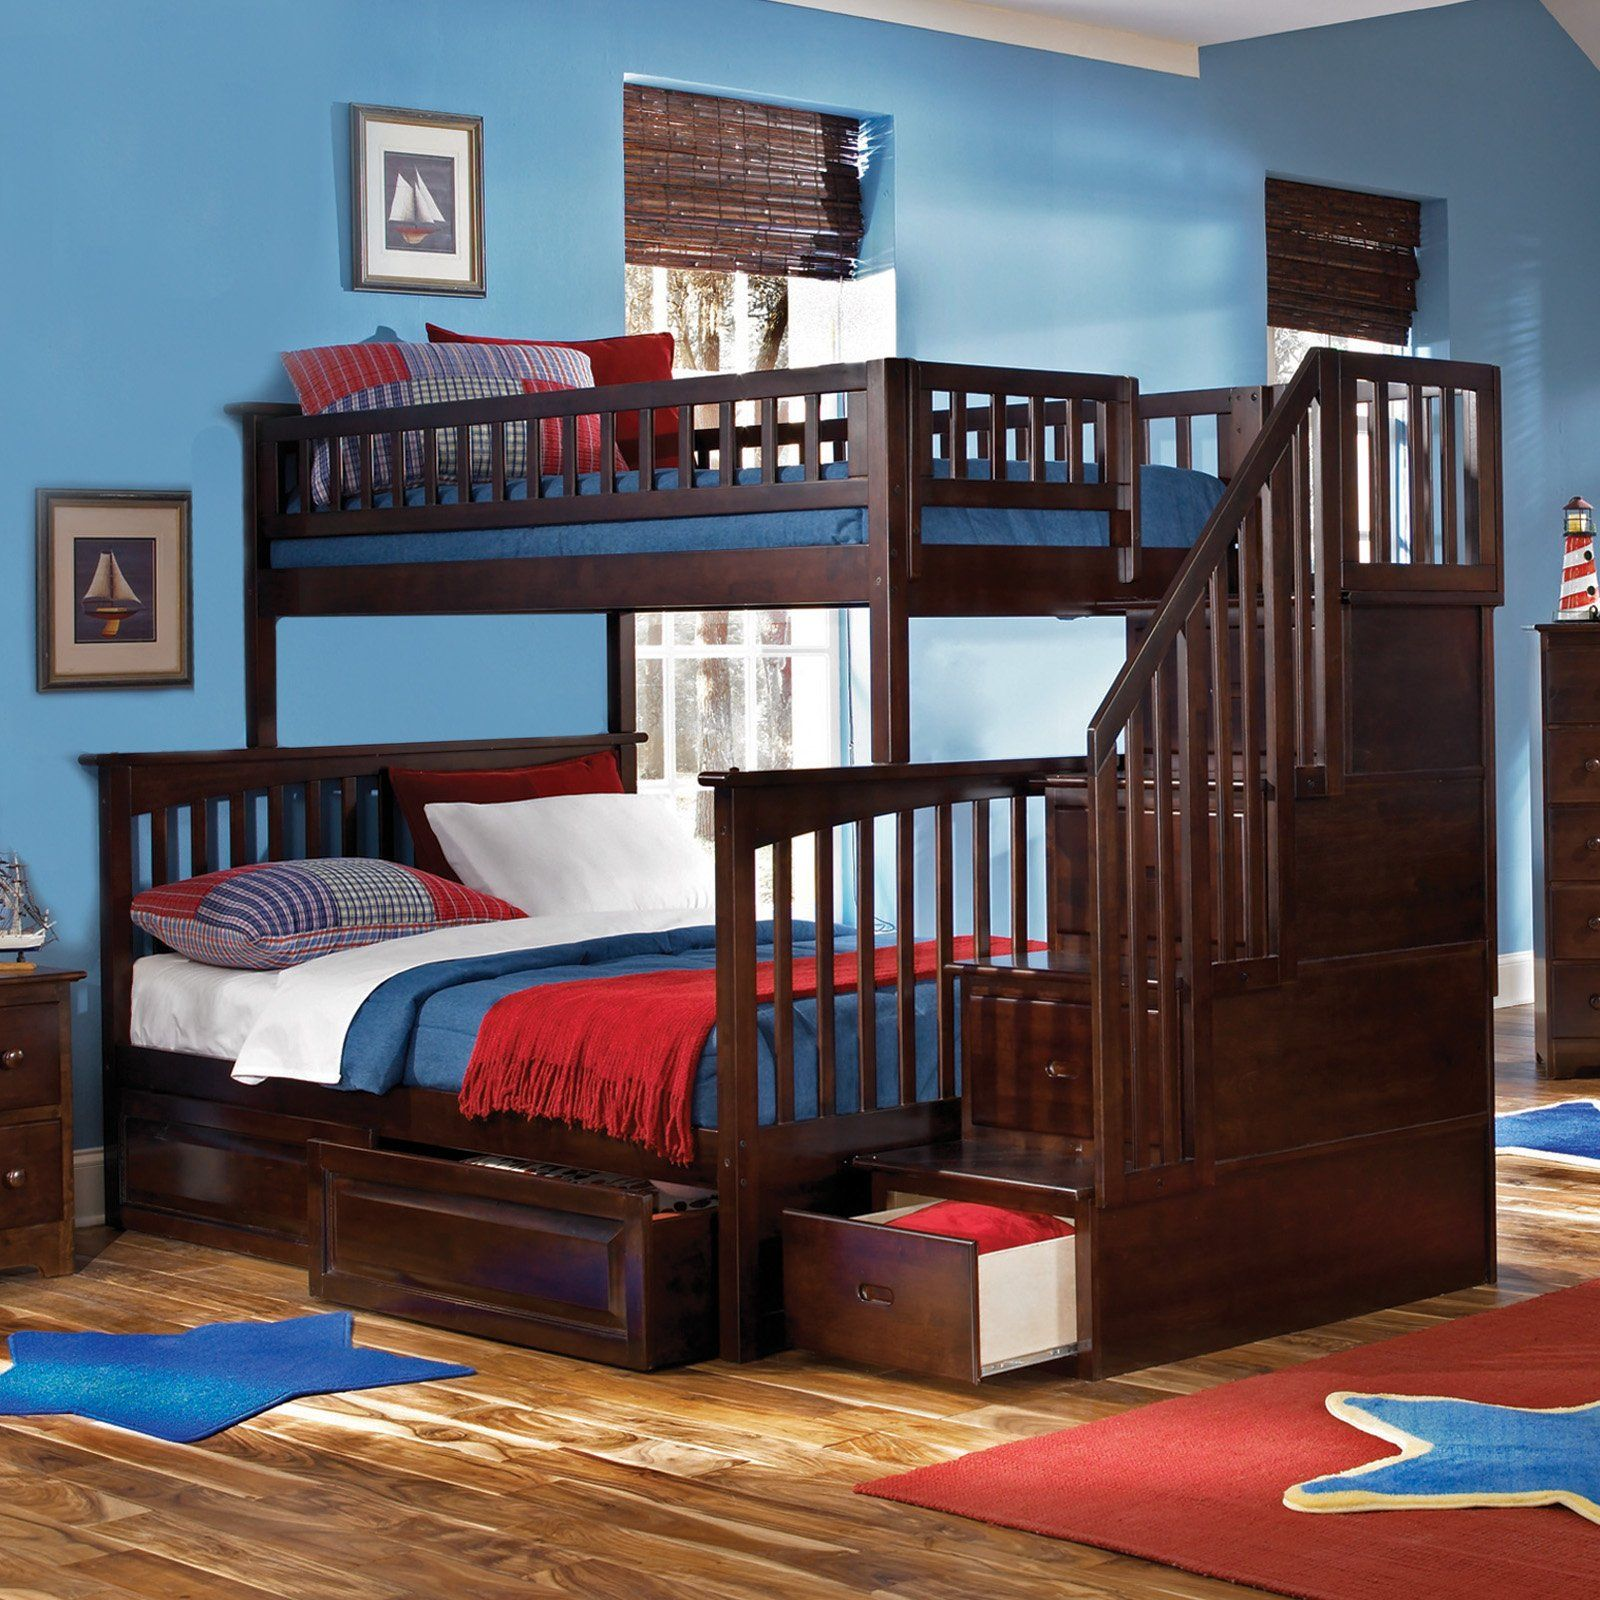 Loft bed with storage stairs  How cool a bunk bed with stairs that have drawers in them too